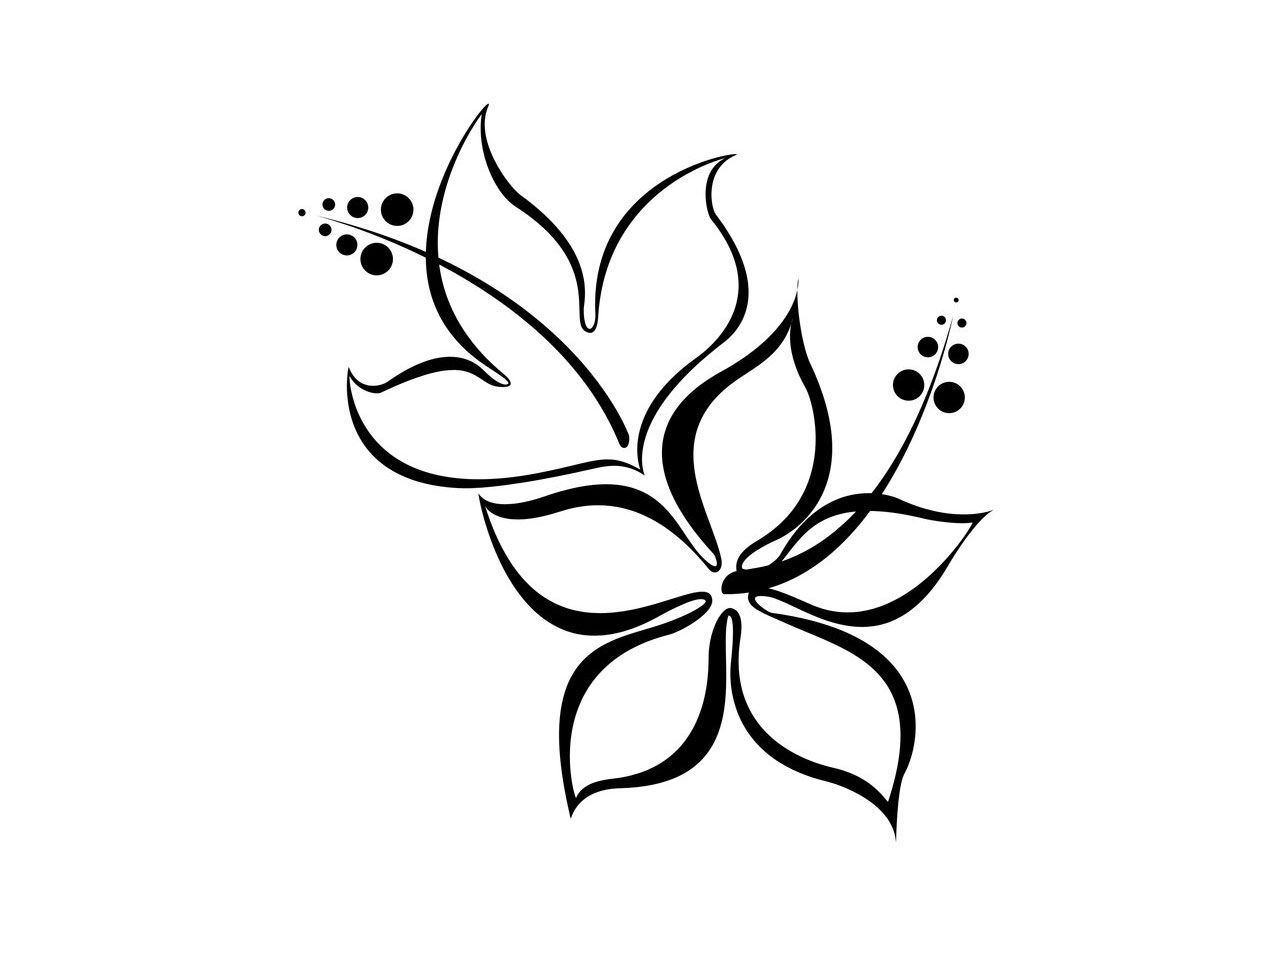 Drawings Designs To Draw Henna Tattoo Ideas